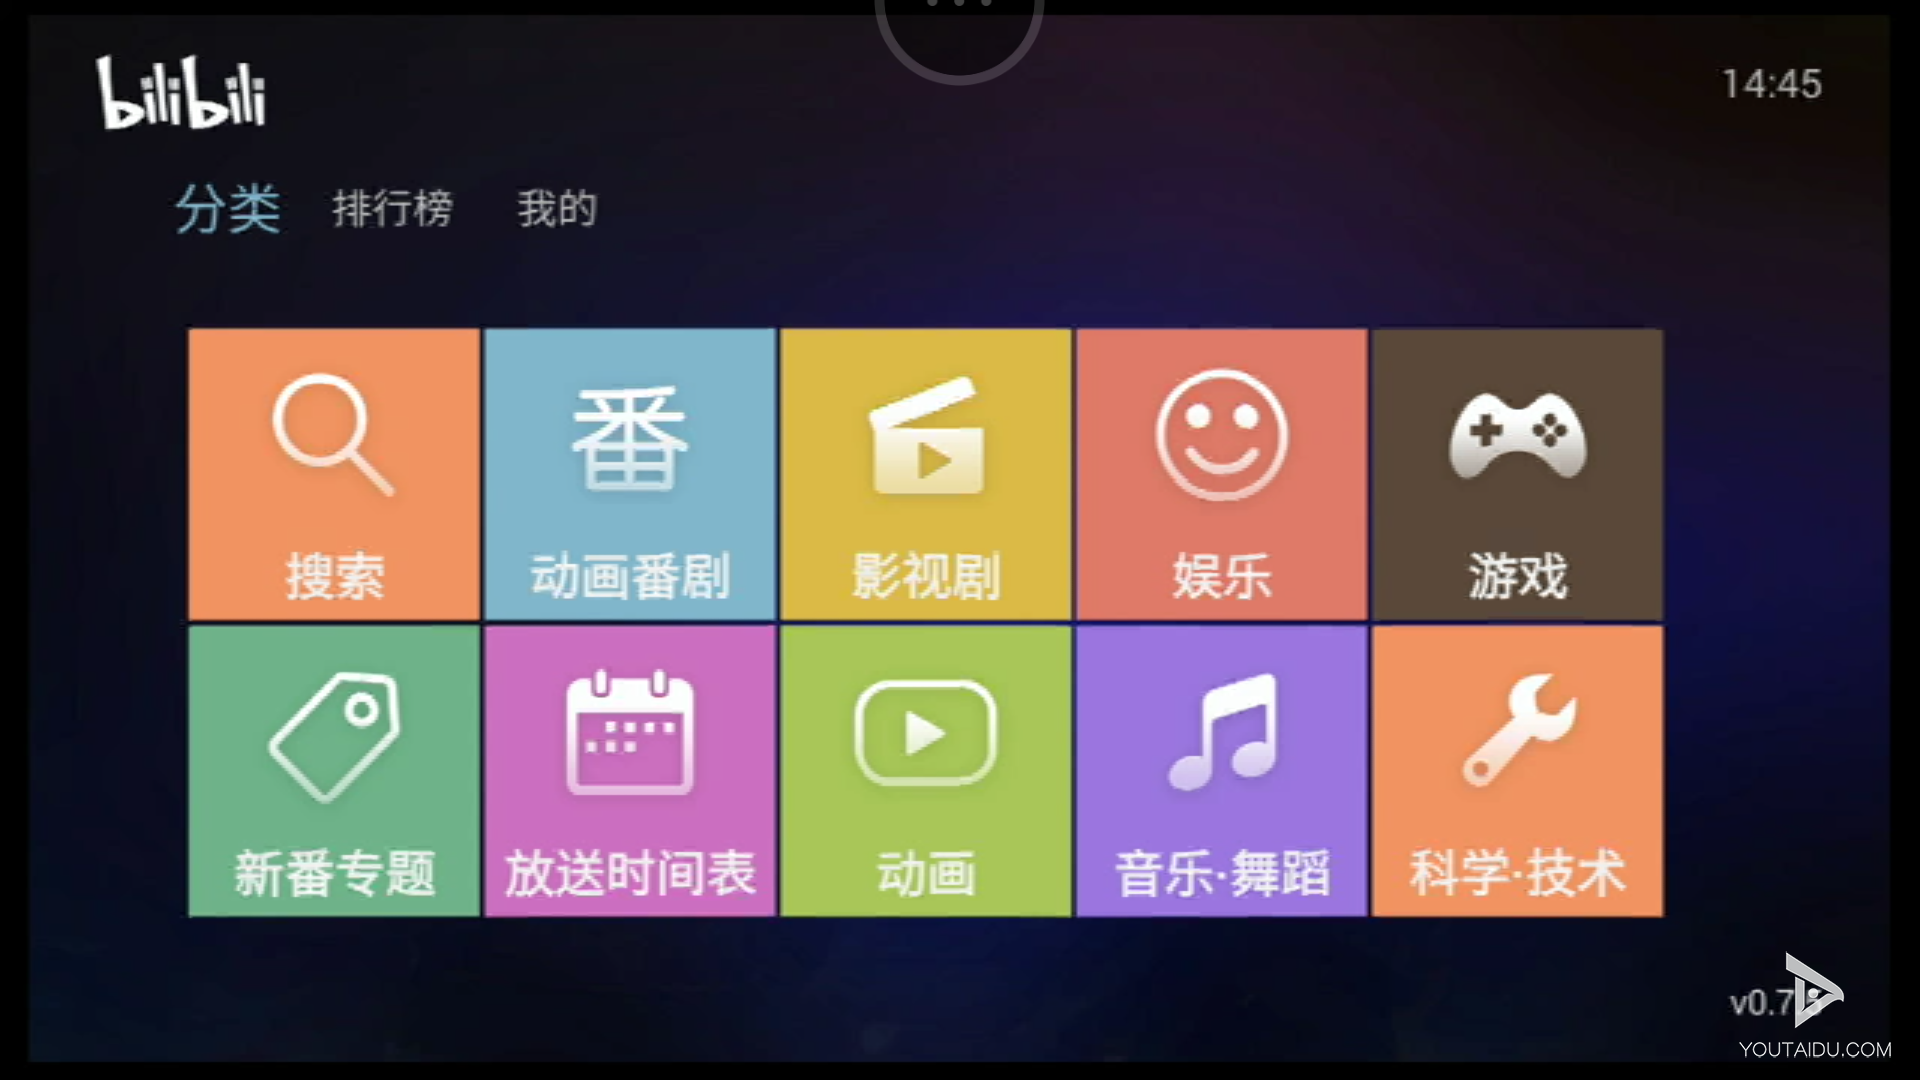 Screenshot_2016-11-18-14-45-10_com.tencent.gamestation.control.png